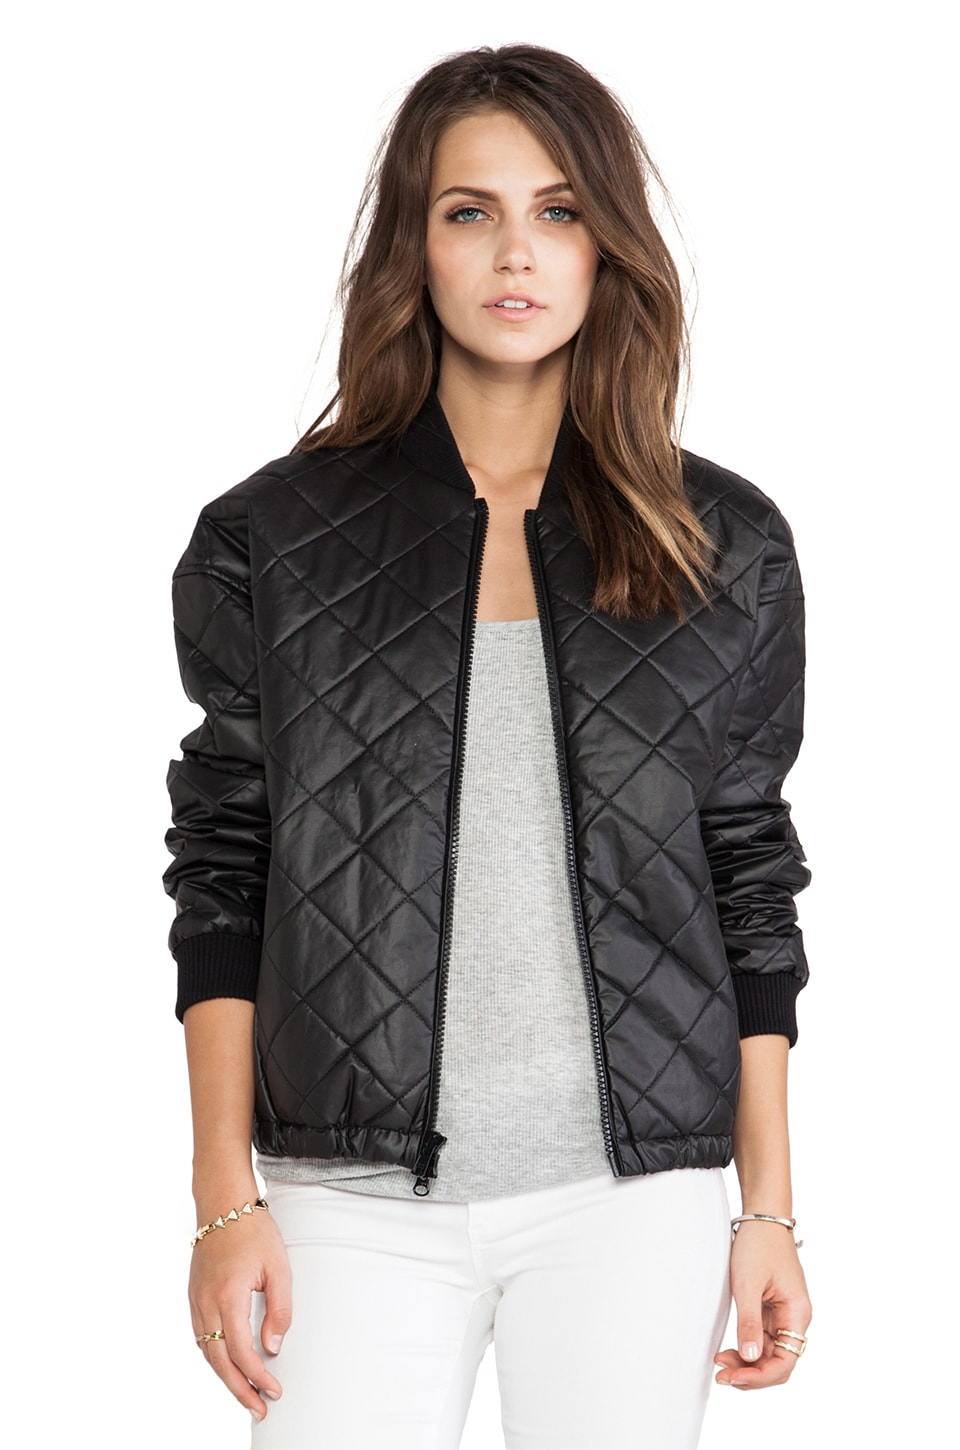 Elizabeth and James Lena Jacket in Black